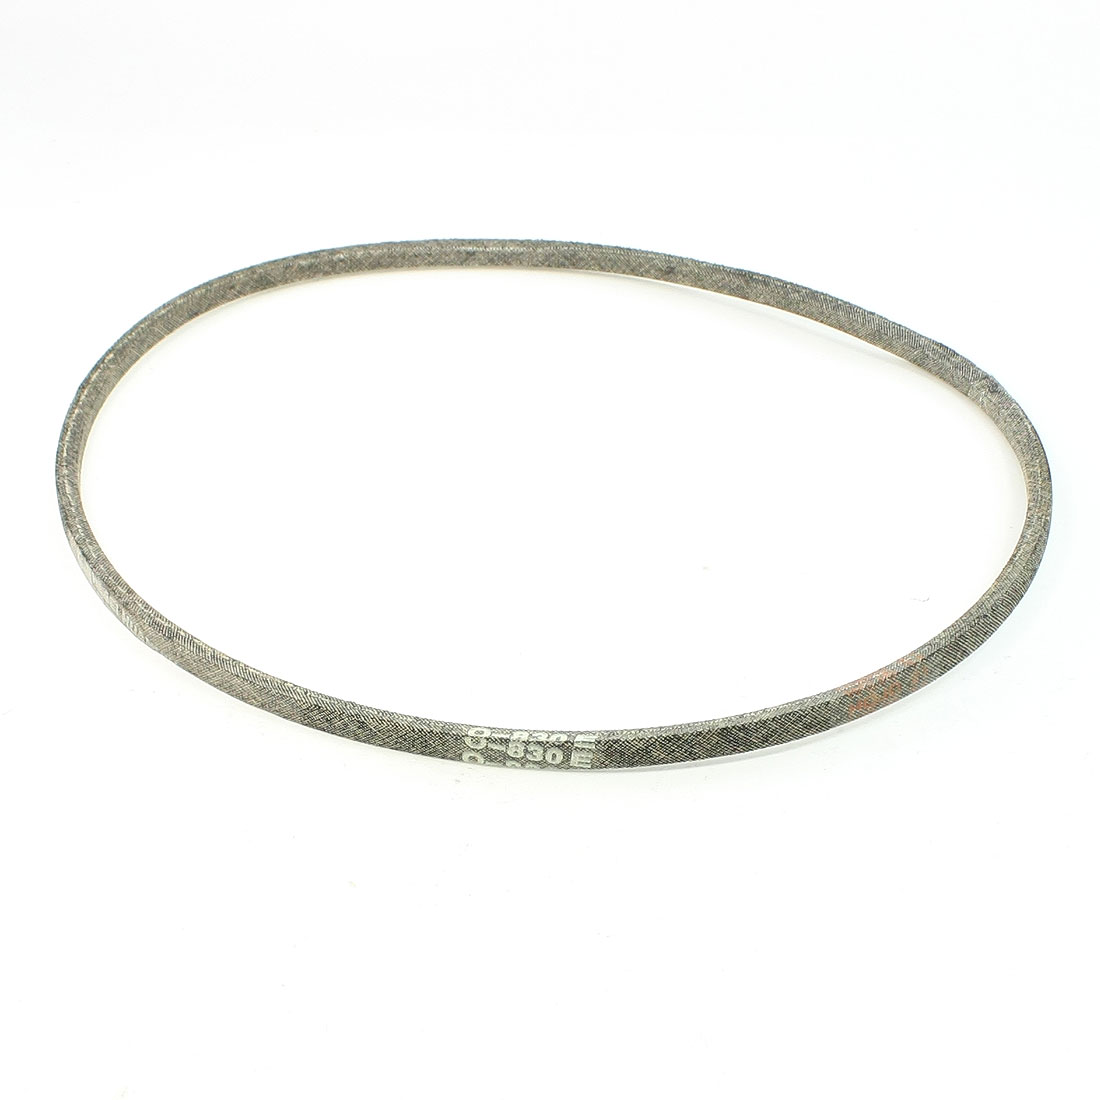 Washing Machine Repair Part 10mm Outer Width 6mm Thick Motor Belt O-830E